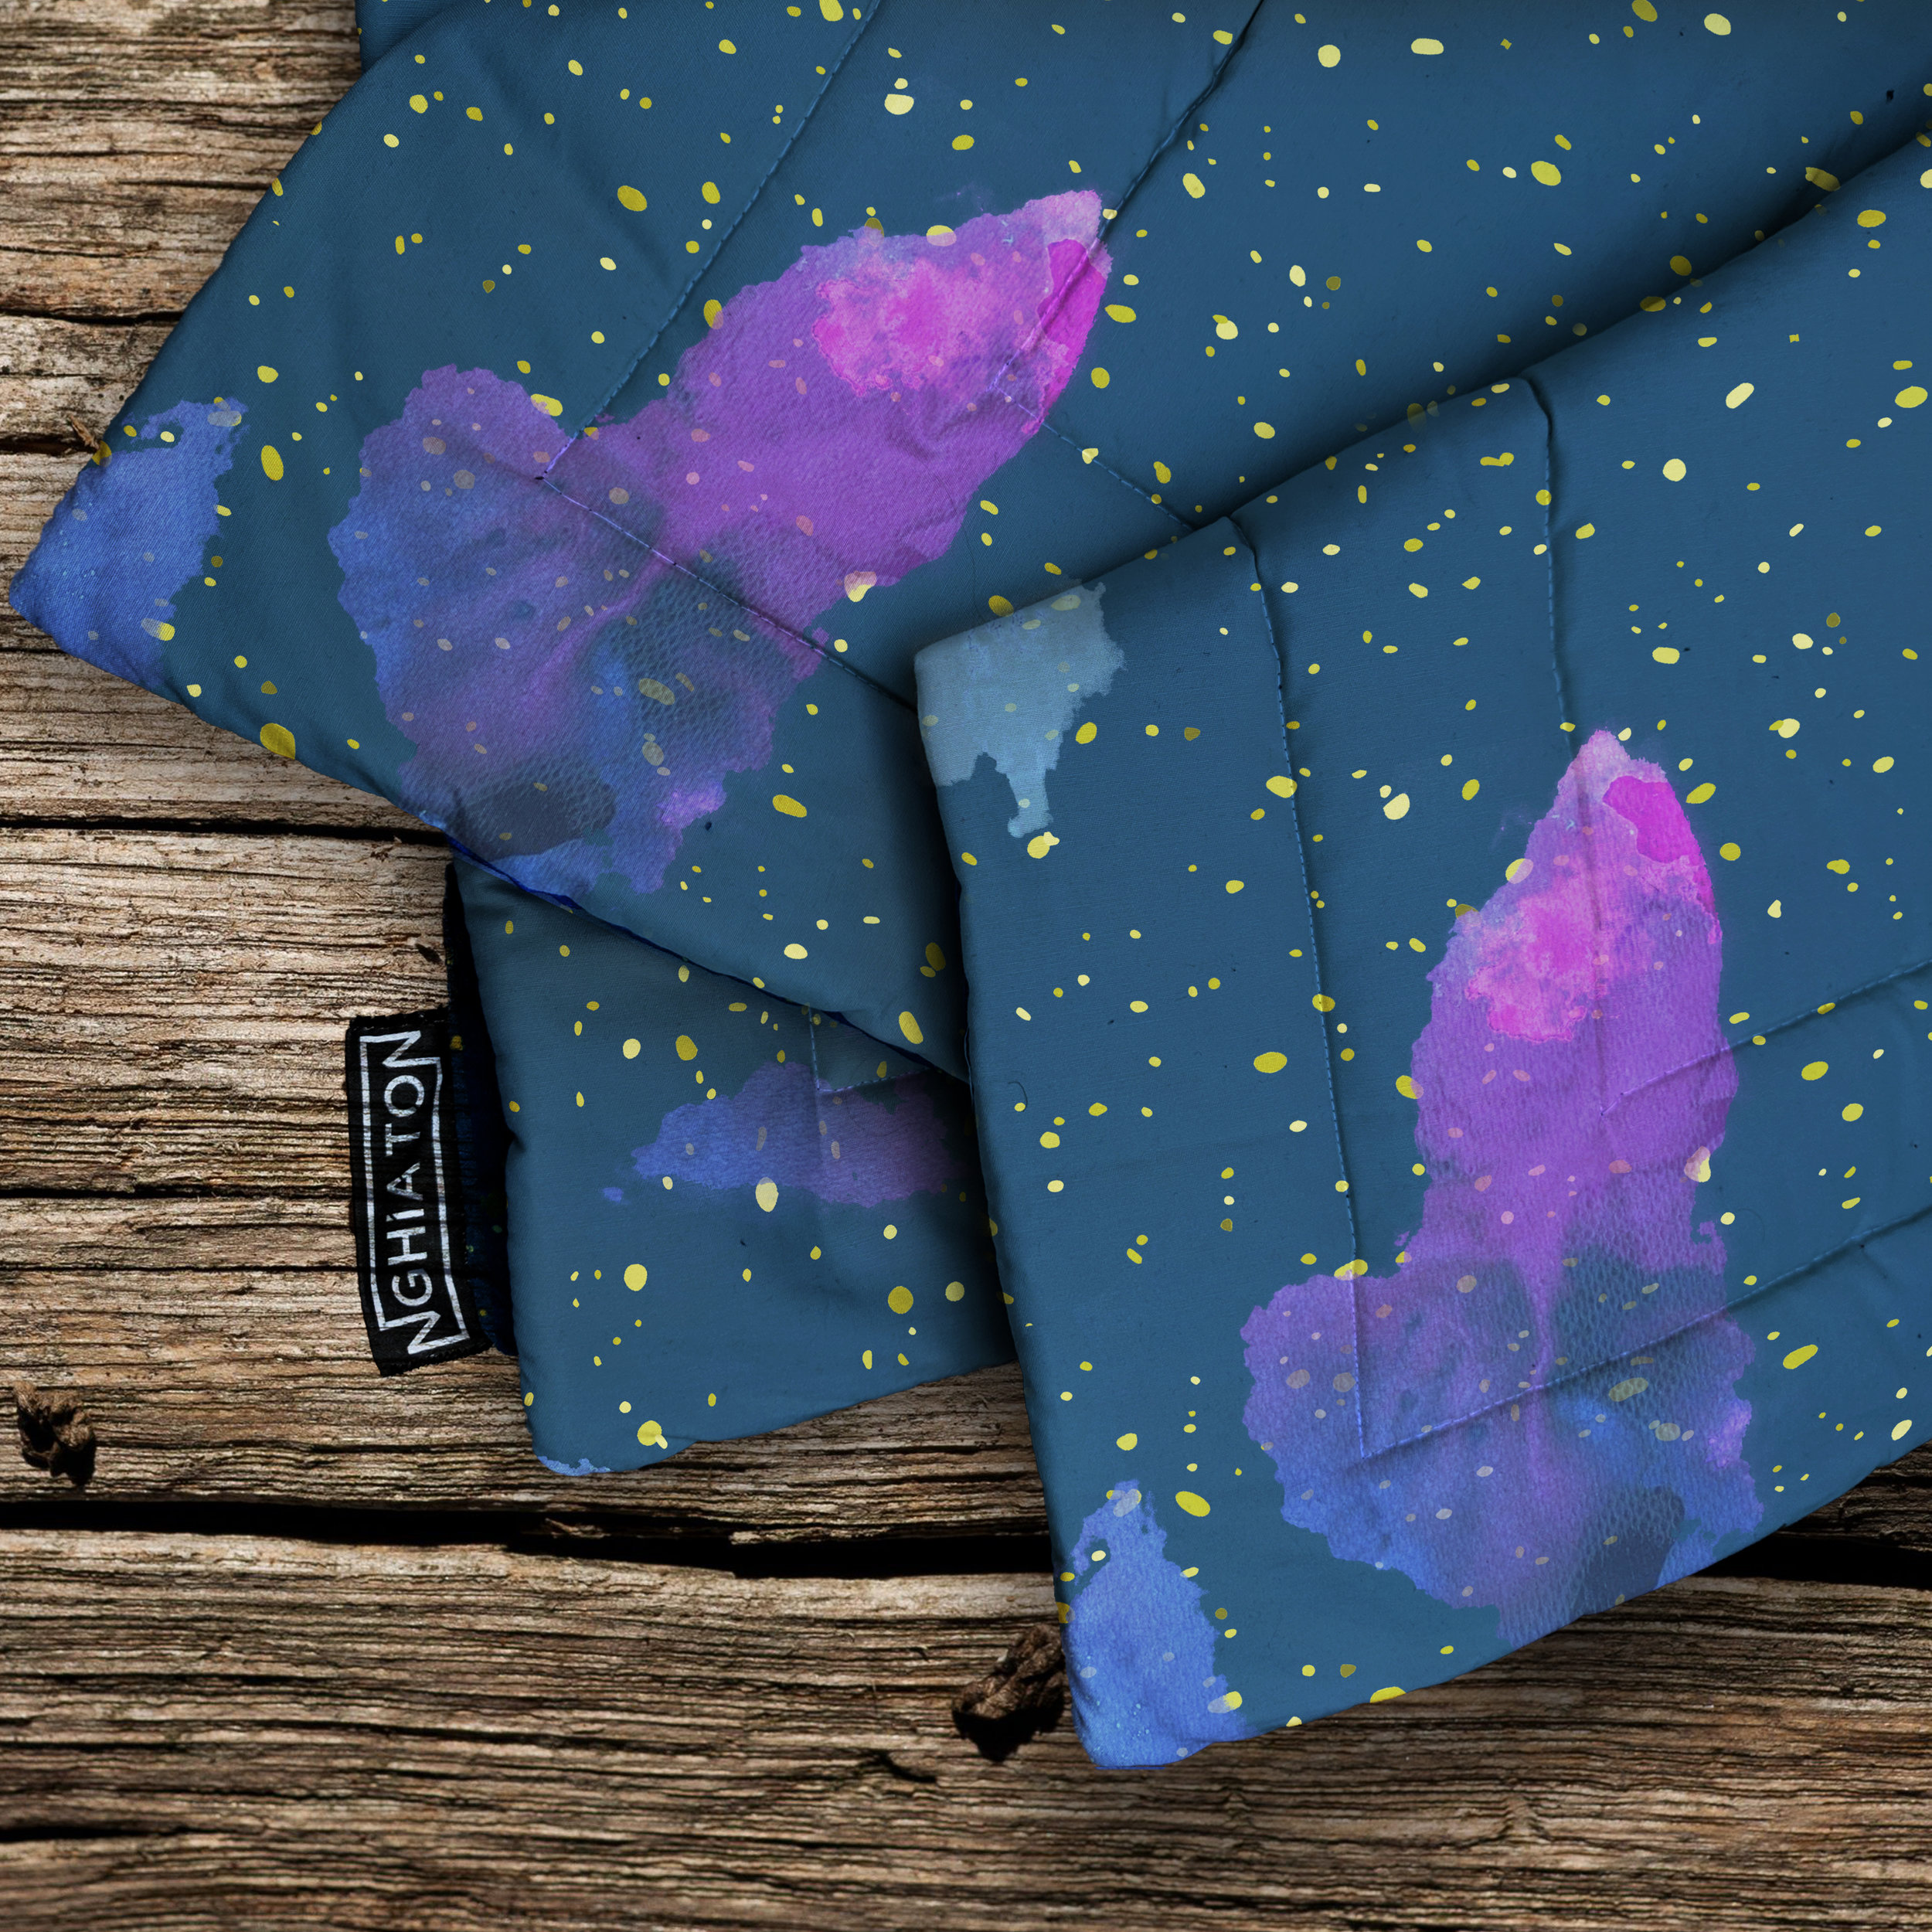 The Stars Quilted Blanket from £58